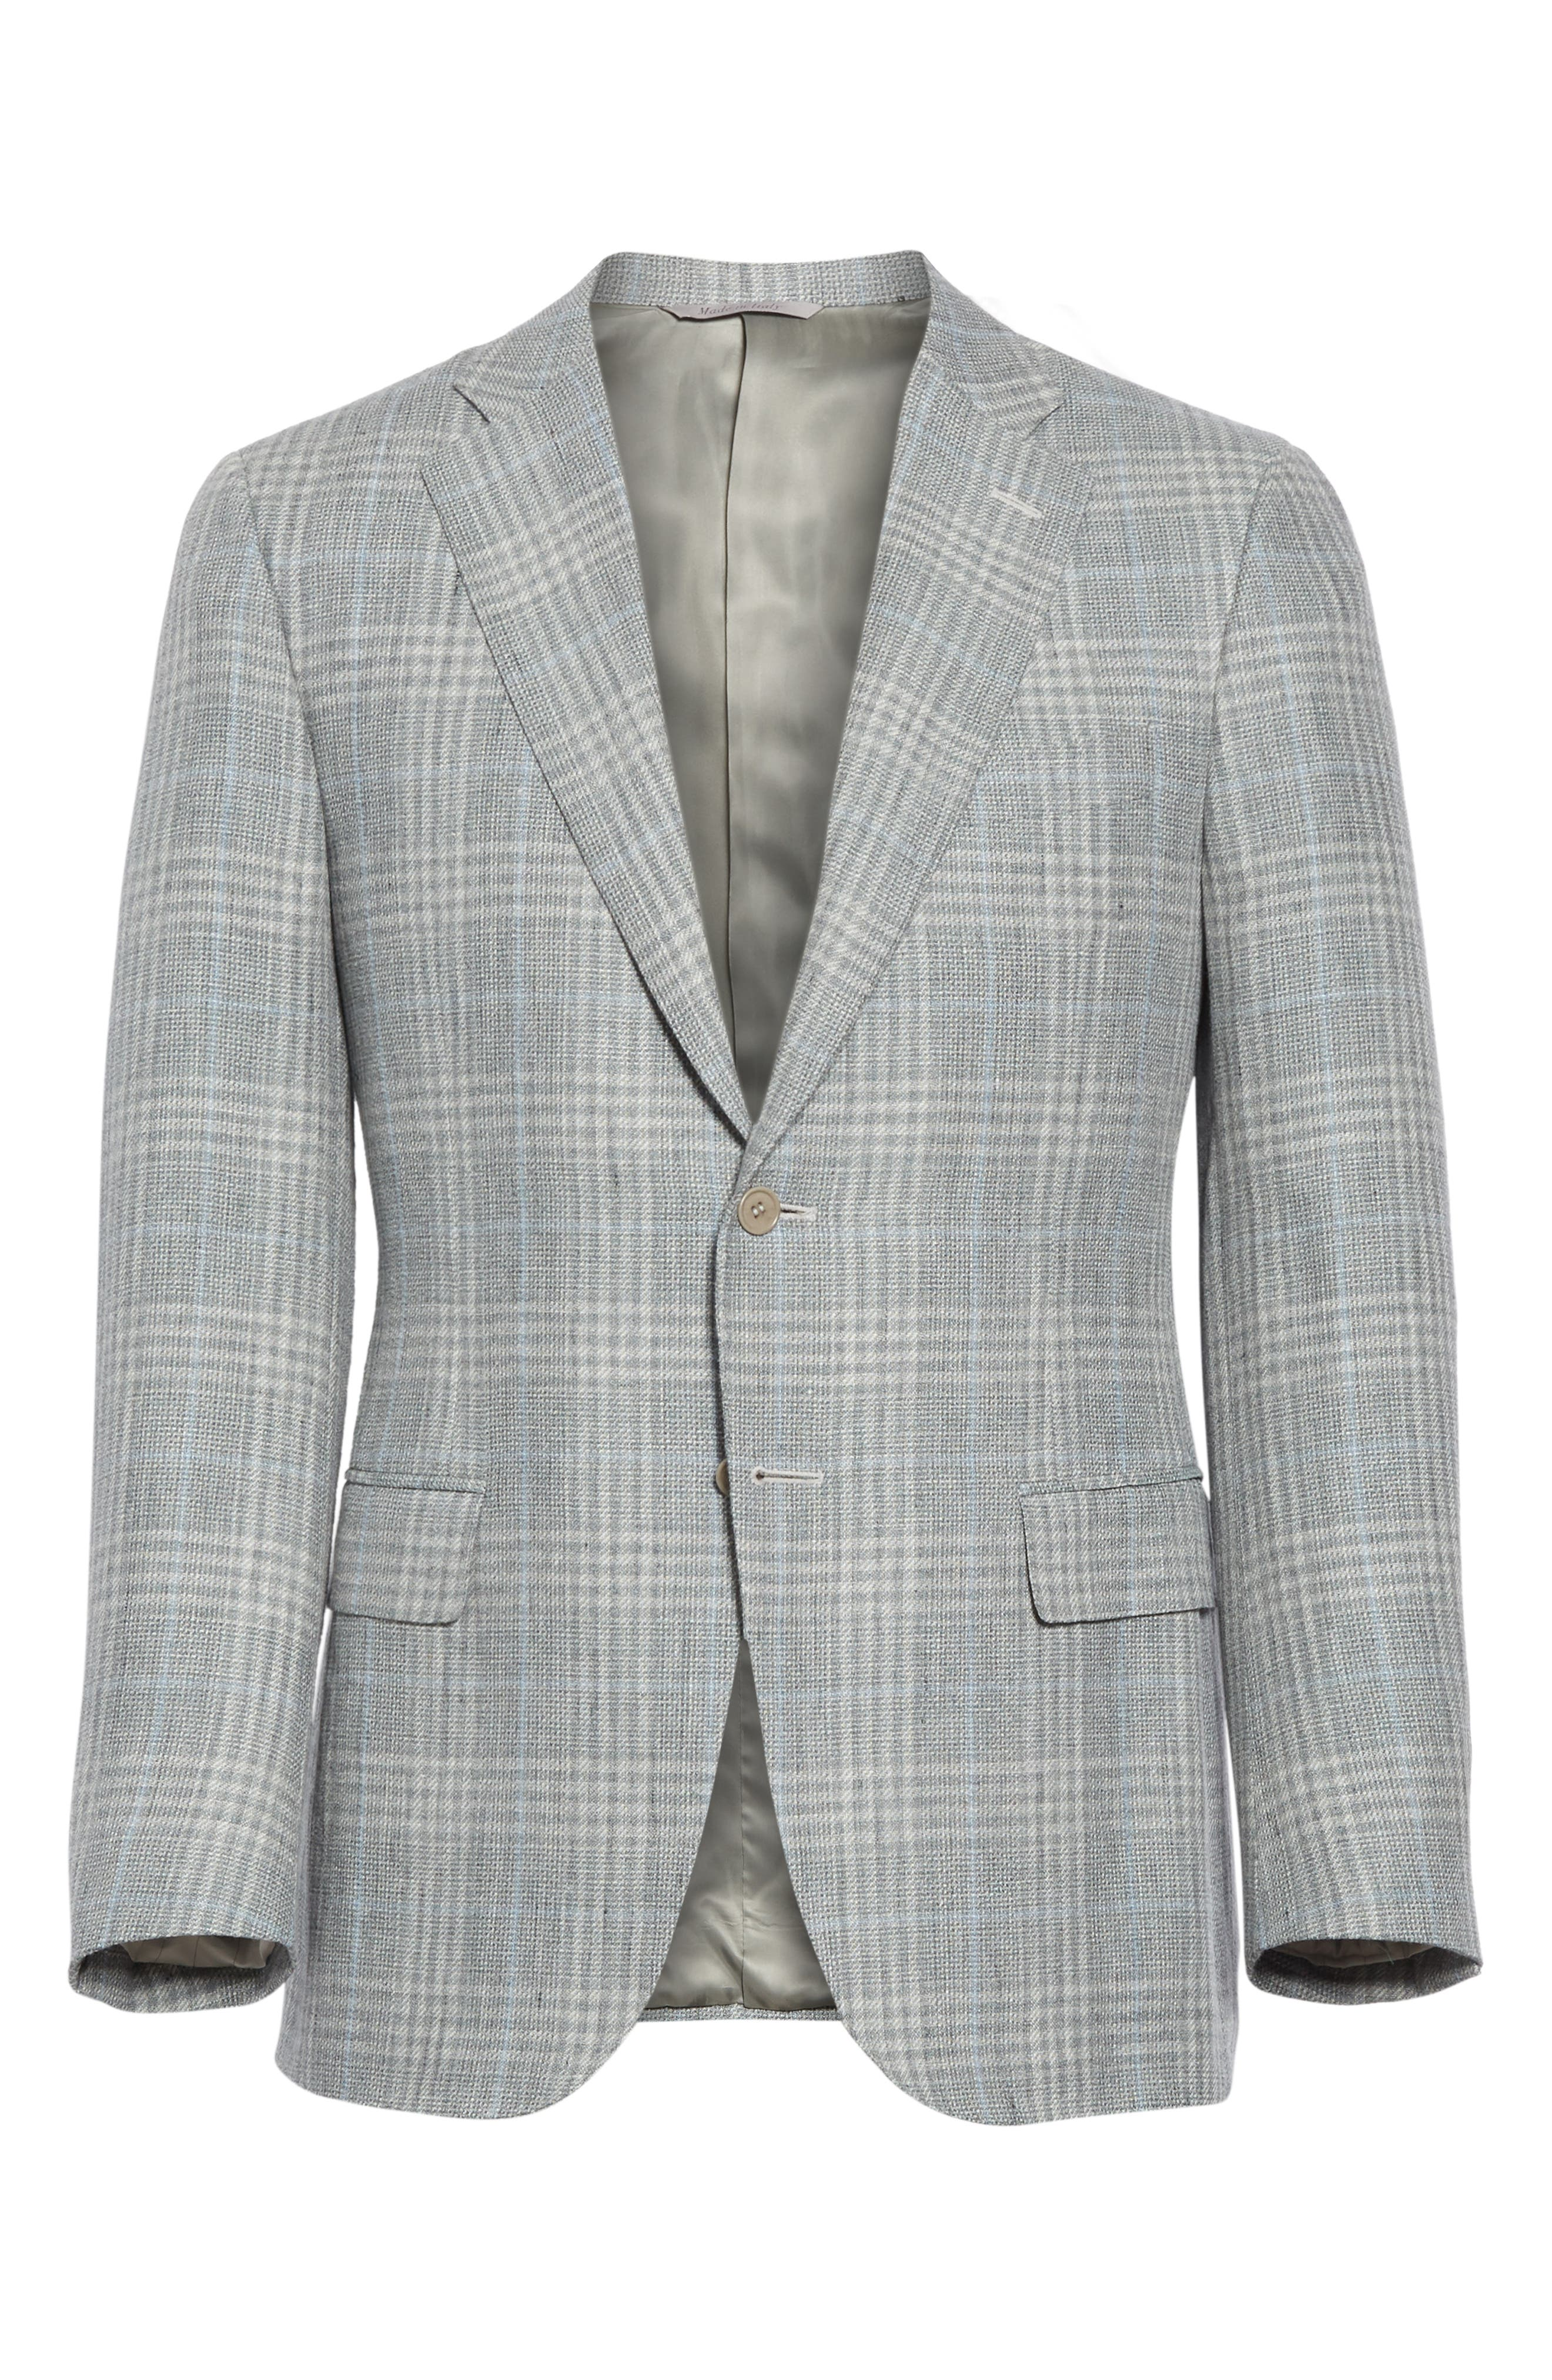 CANALI, Sienna Classic Fit Plaid Linen & Wool Sport Coat, Alternate thumbnail 5, color, LIGHT GREEN